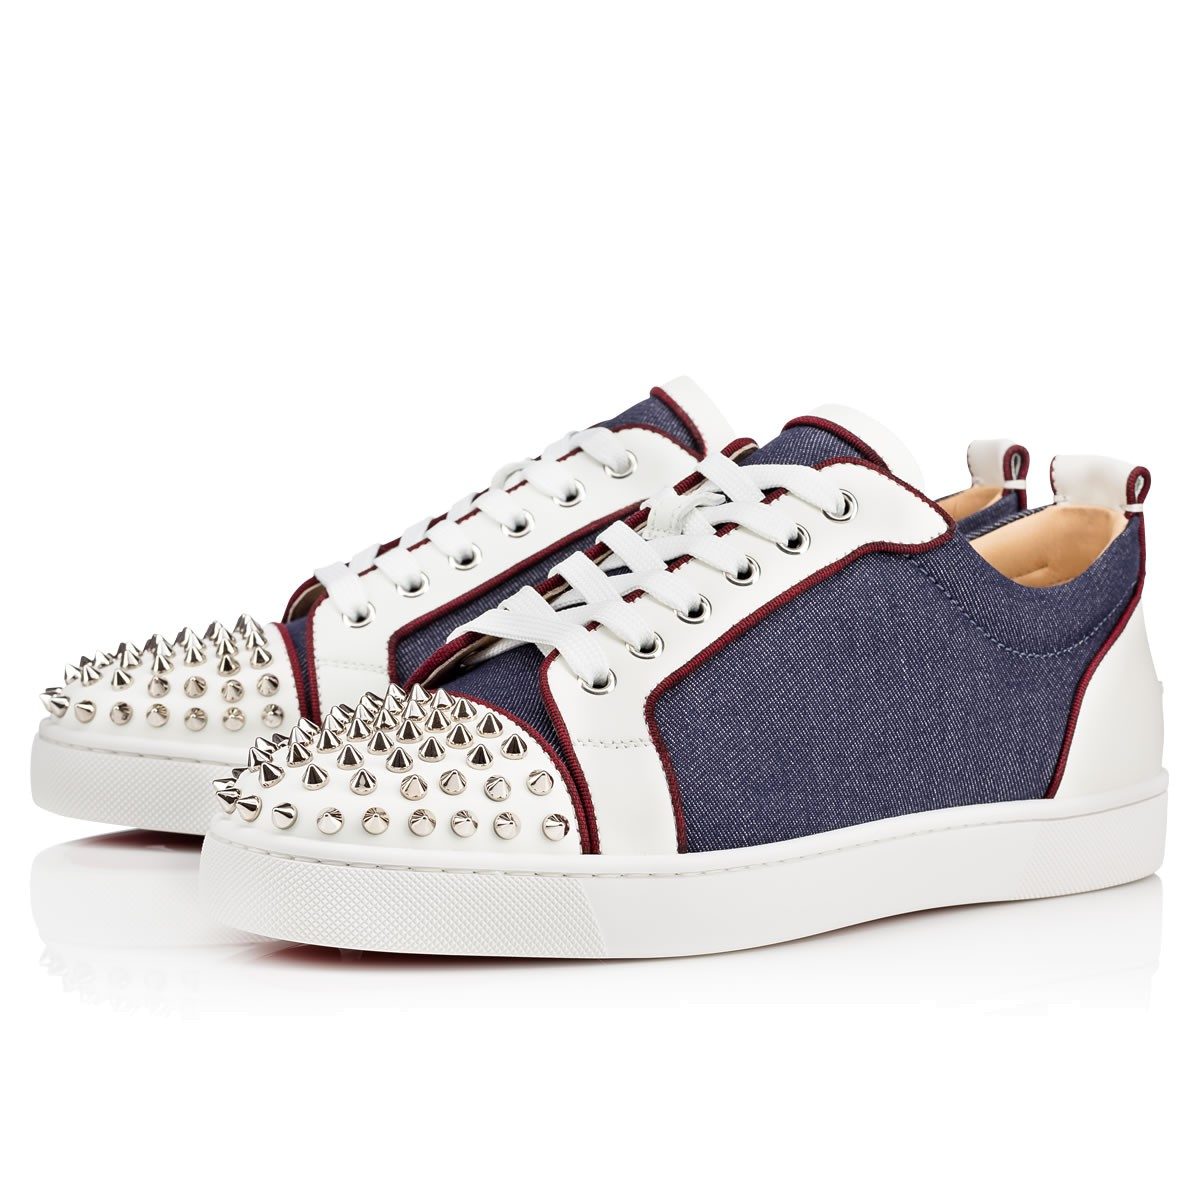 9219d839e08 Louis Junior Spikes Orlato Men's Flat Version Blue/Silver Leather - Men  Shoes - Christian Louboutin